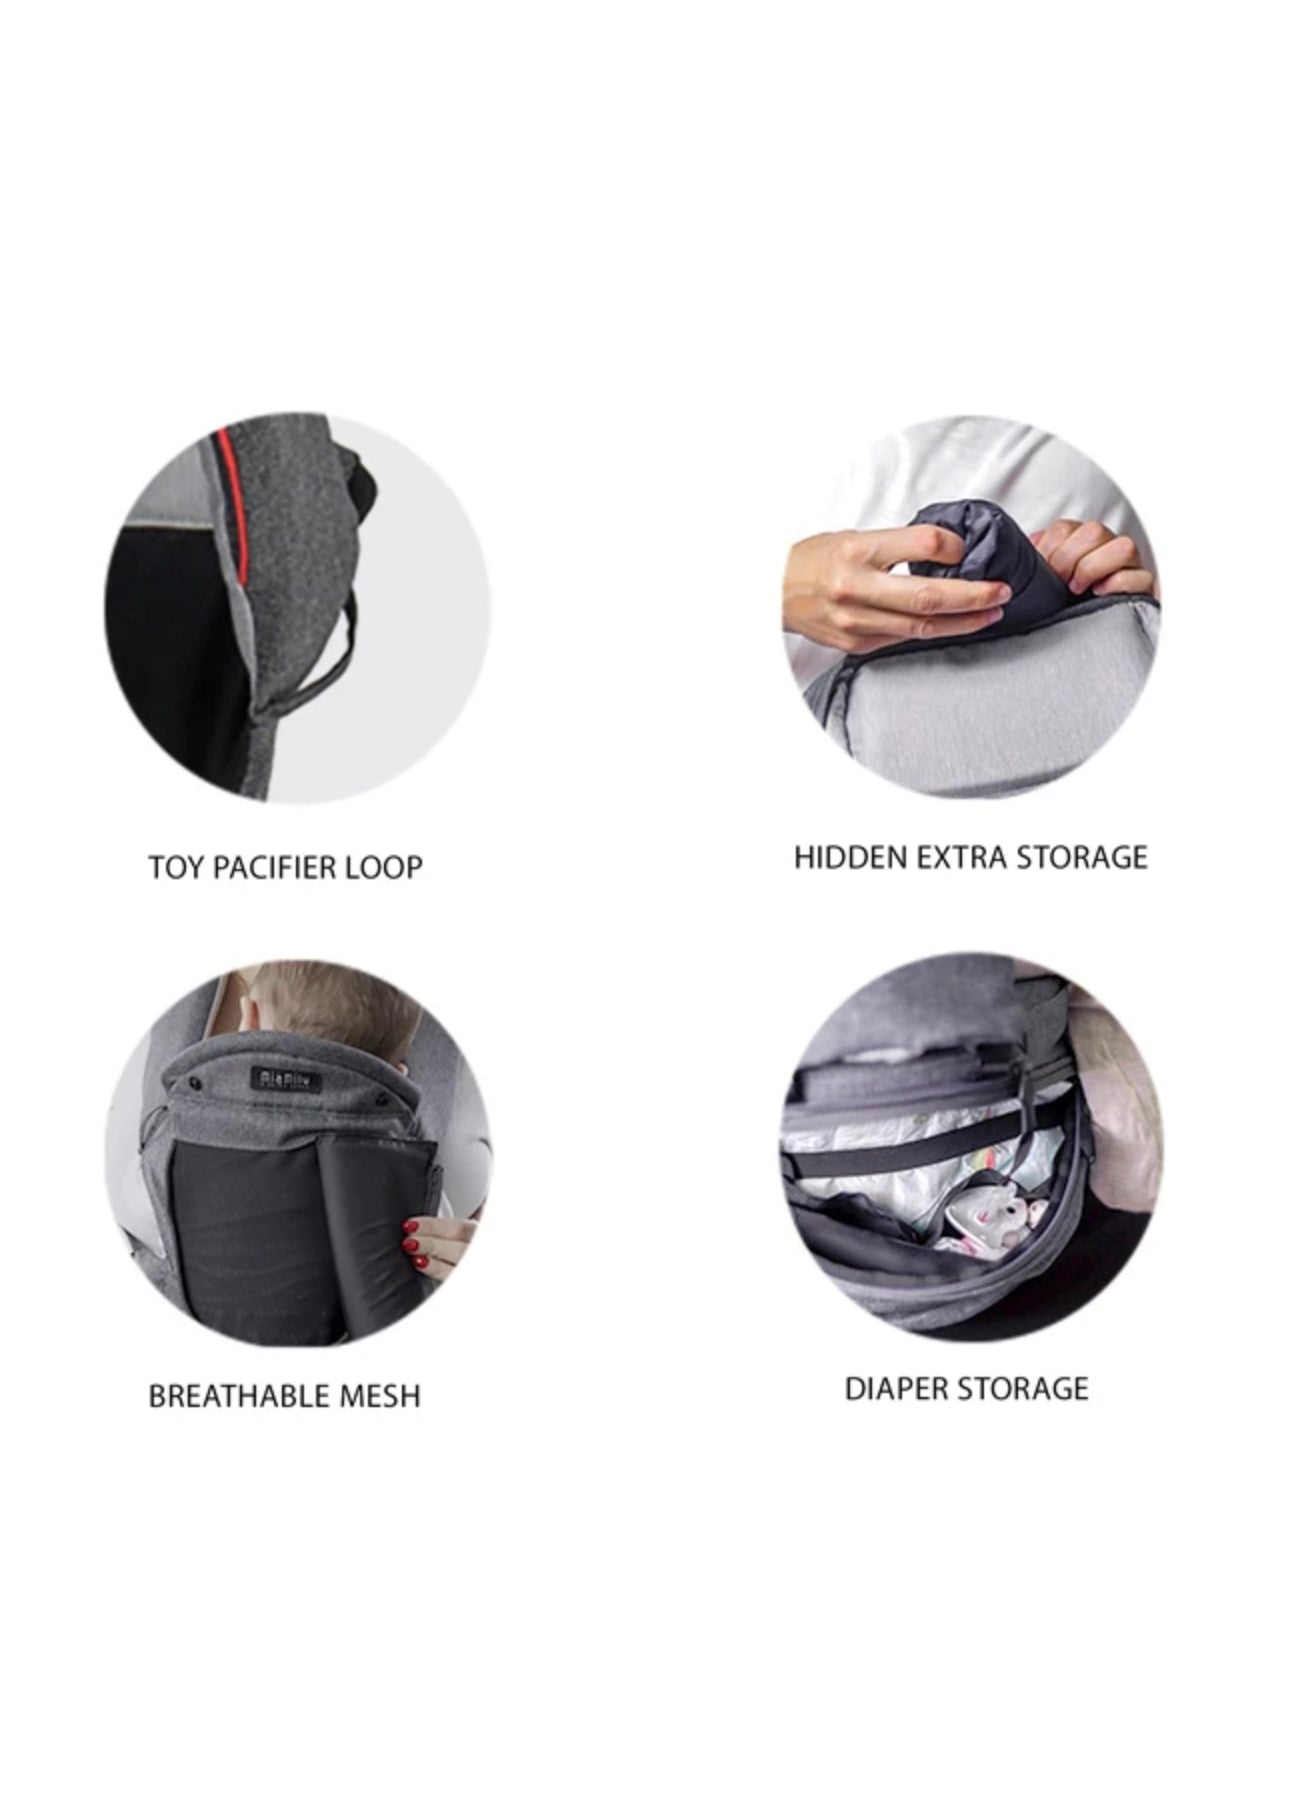 HIPSTER™ SMART 3D Baby Carrier features 2